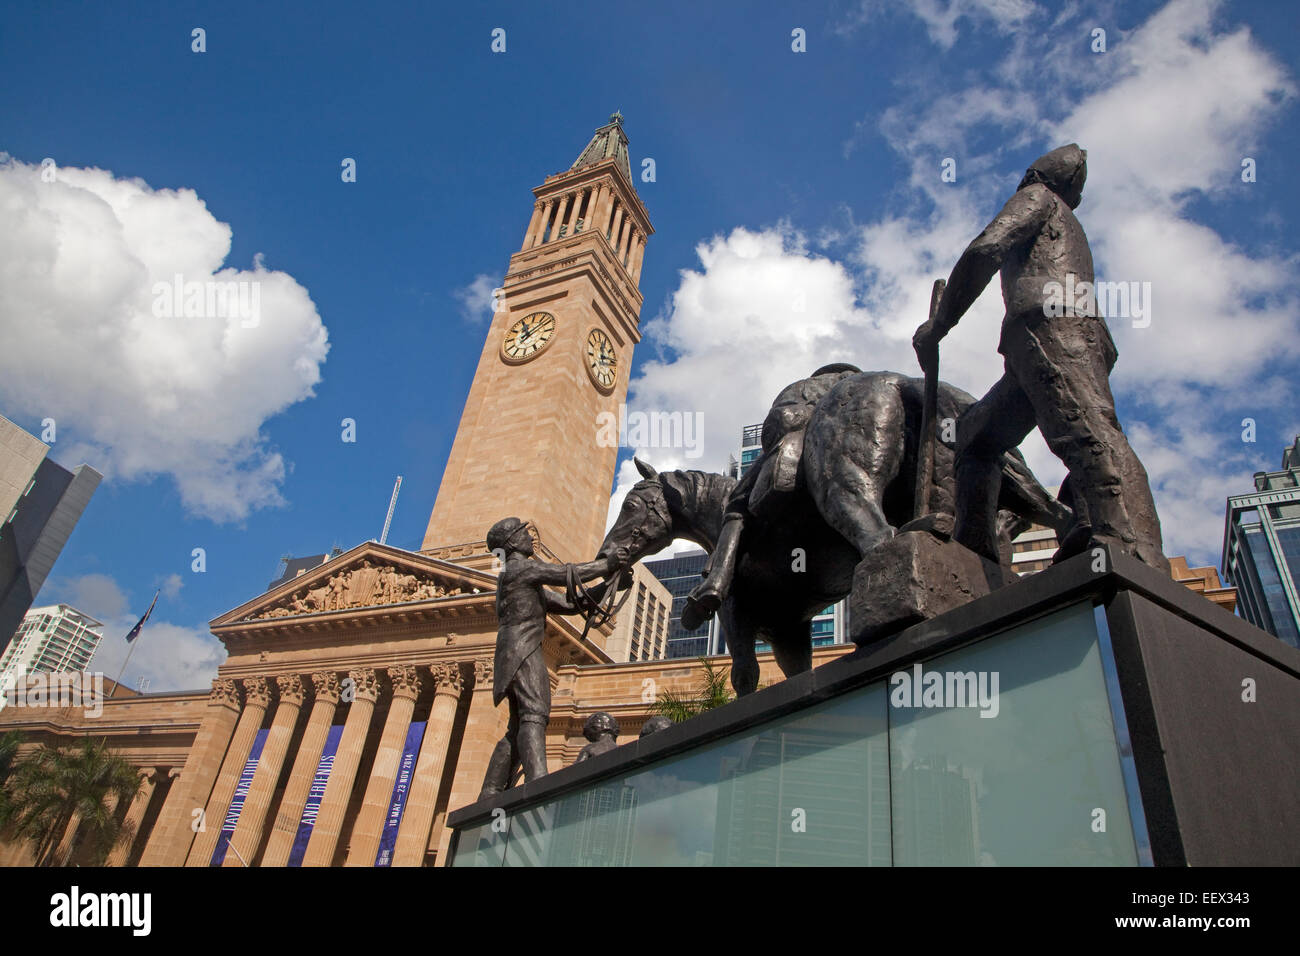 Sculpture group and clock tower of Brisbane City Hall, capital town of Queensland, Australia - Stock Image